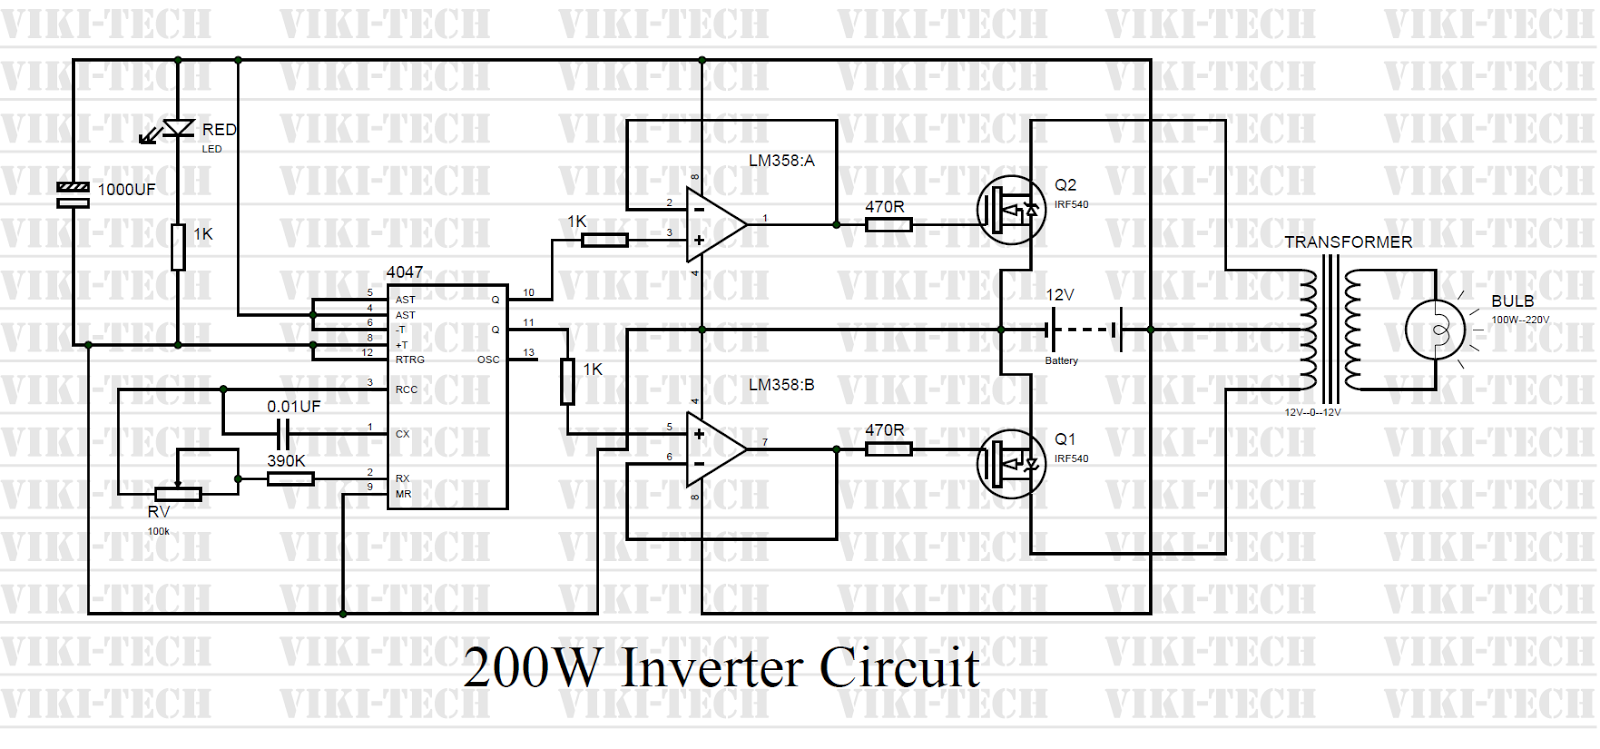 200 Watt Inverter circuit diagram:-